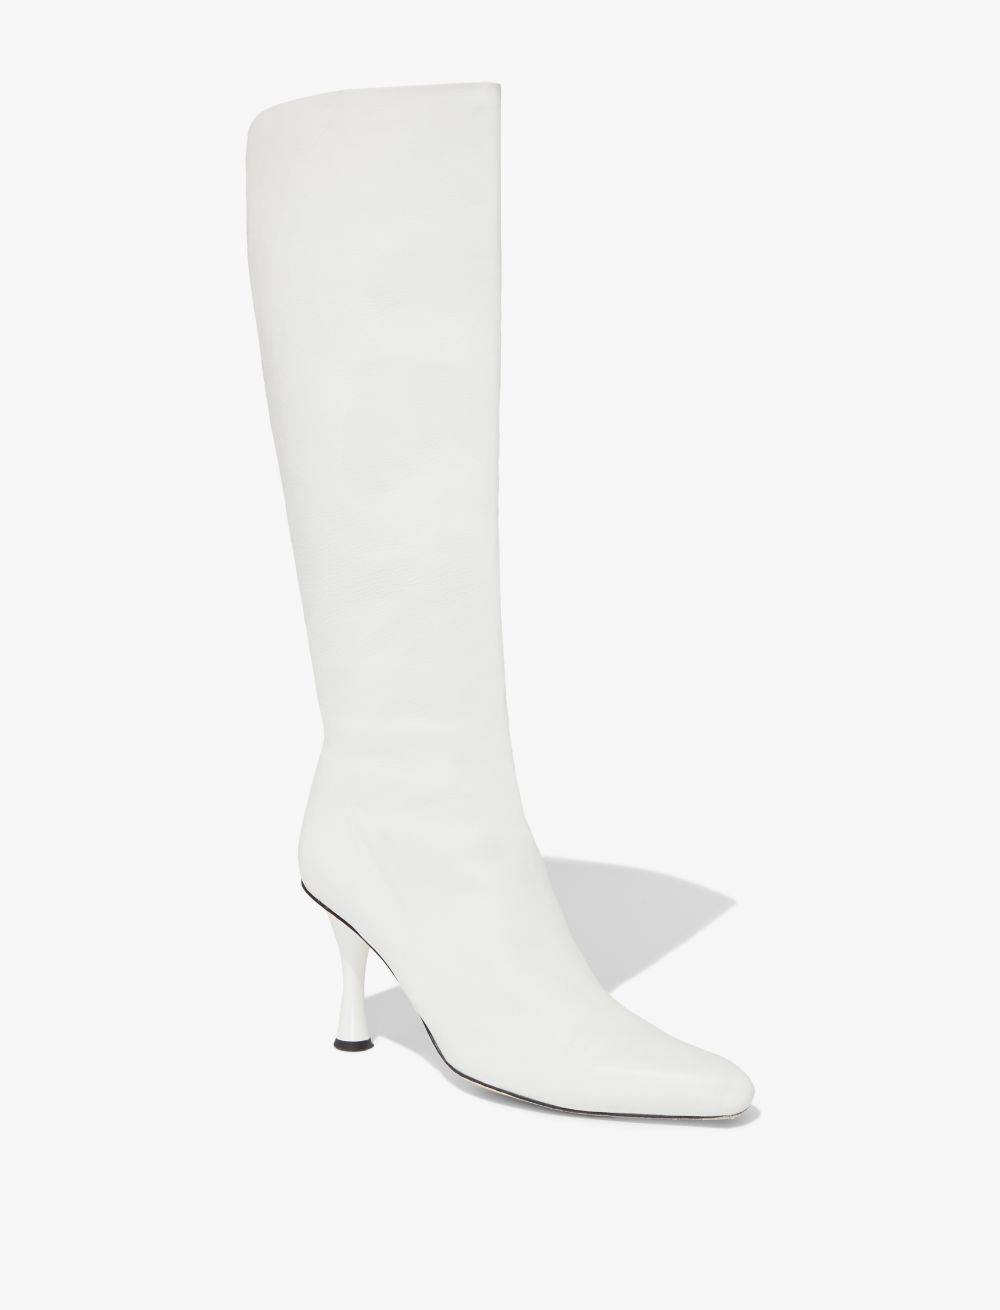 When you picture yourself walking down the streets of your favourite city, what do you see yourself wearing? The answer is Proenza Schouler and these white lambskin tall boots, perched atop a 90mm sculpted heel. They were made for you. Featuring a pointed toe, a square tip, a slip-on style, a knee-length and a sculpted high heel.